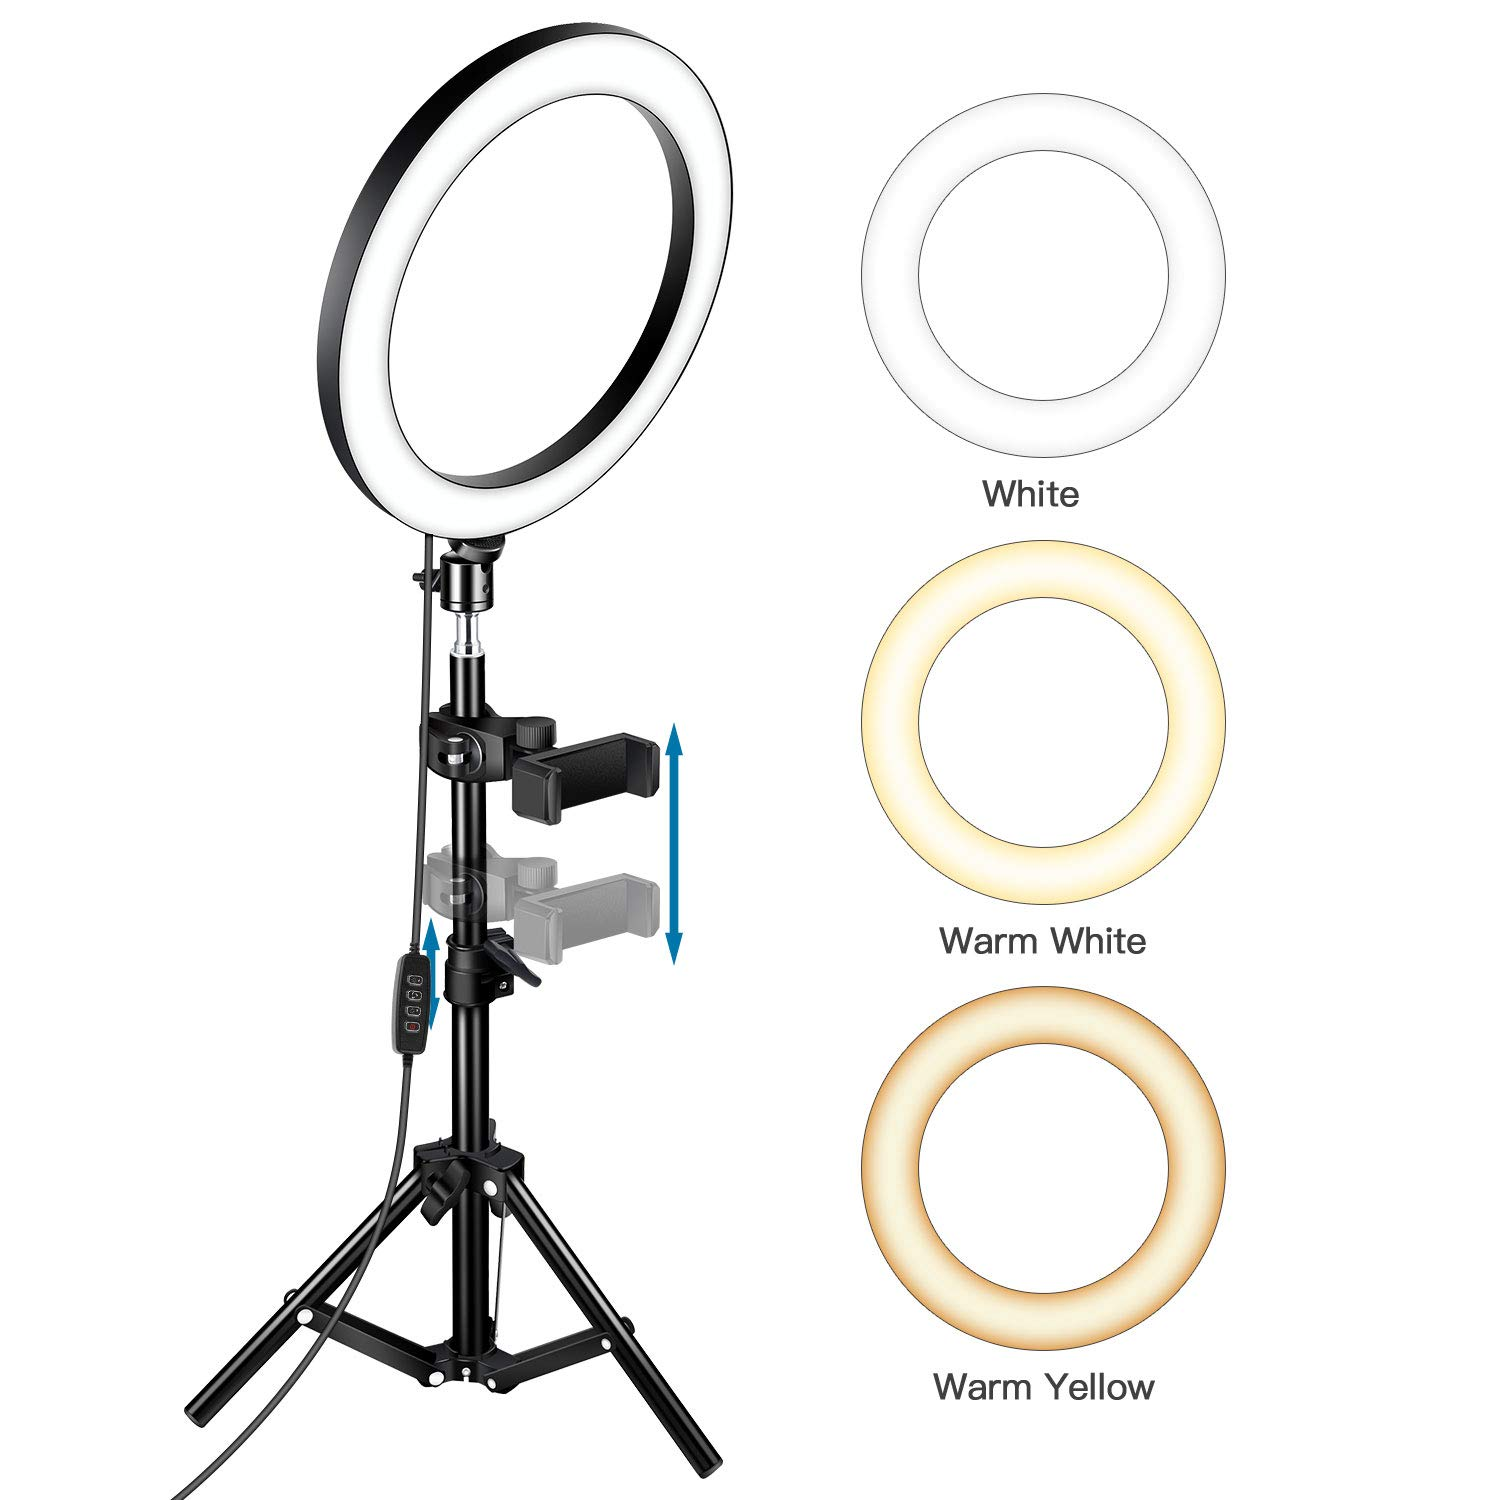 TaoTens 10'' LED Ring Light with Tripod Stand & Cell Phone Holder for Live Stream/Makeup,Mini Led Camera Ringlight for YouTube Vlog/Video/Photography Compatible with iPhone Xs Max XR Android